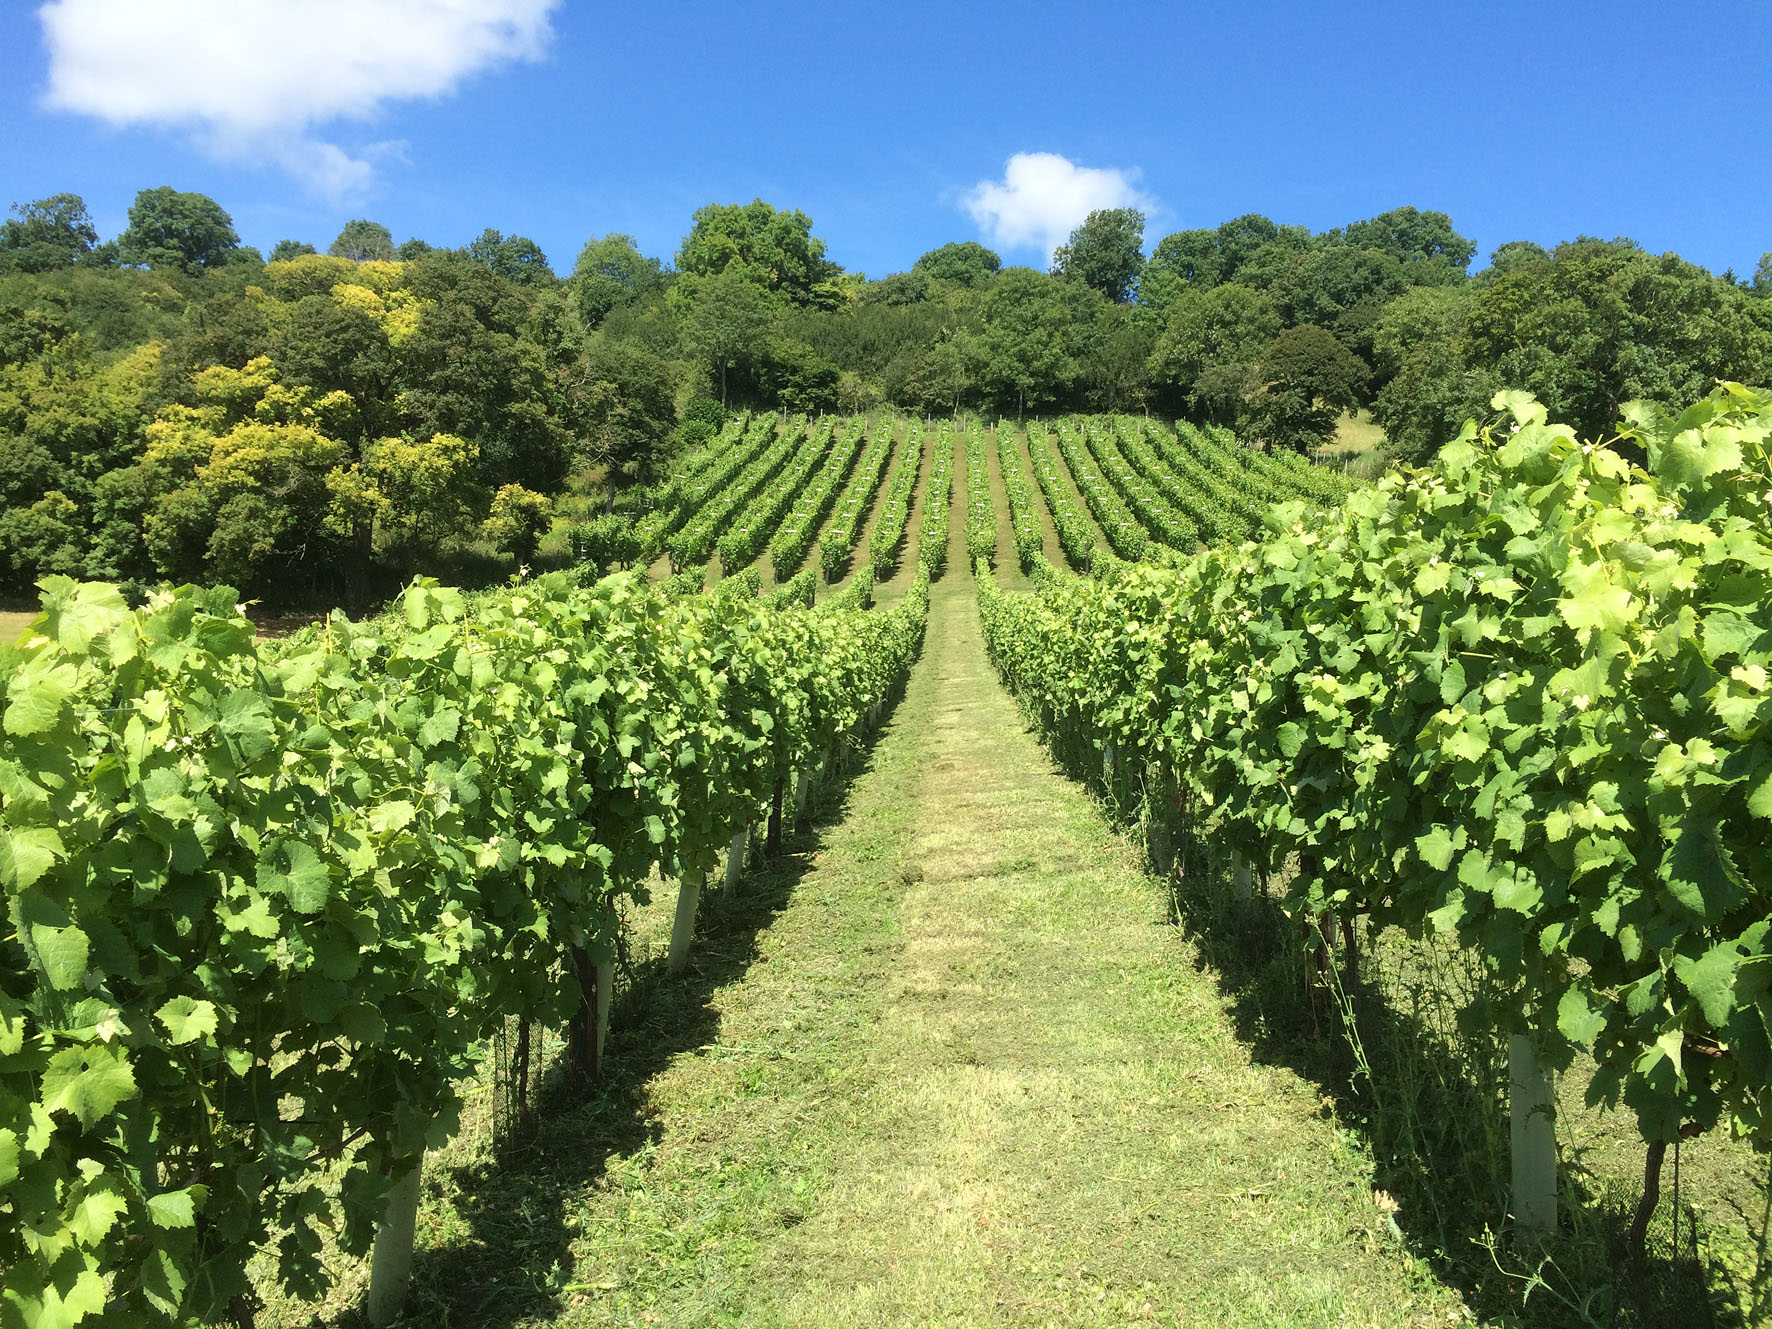 The vineyard in July